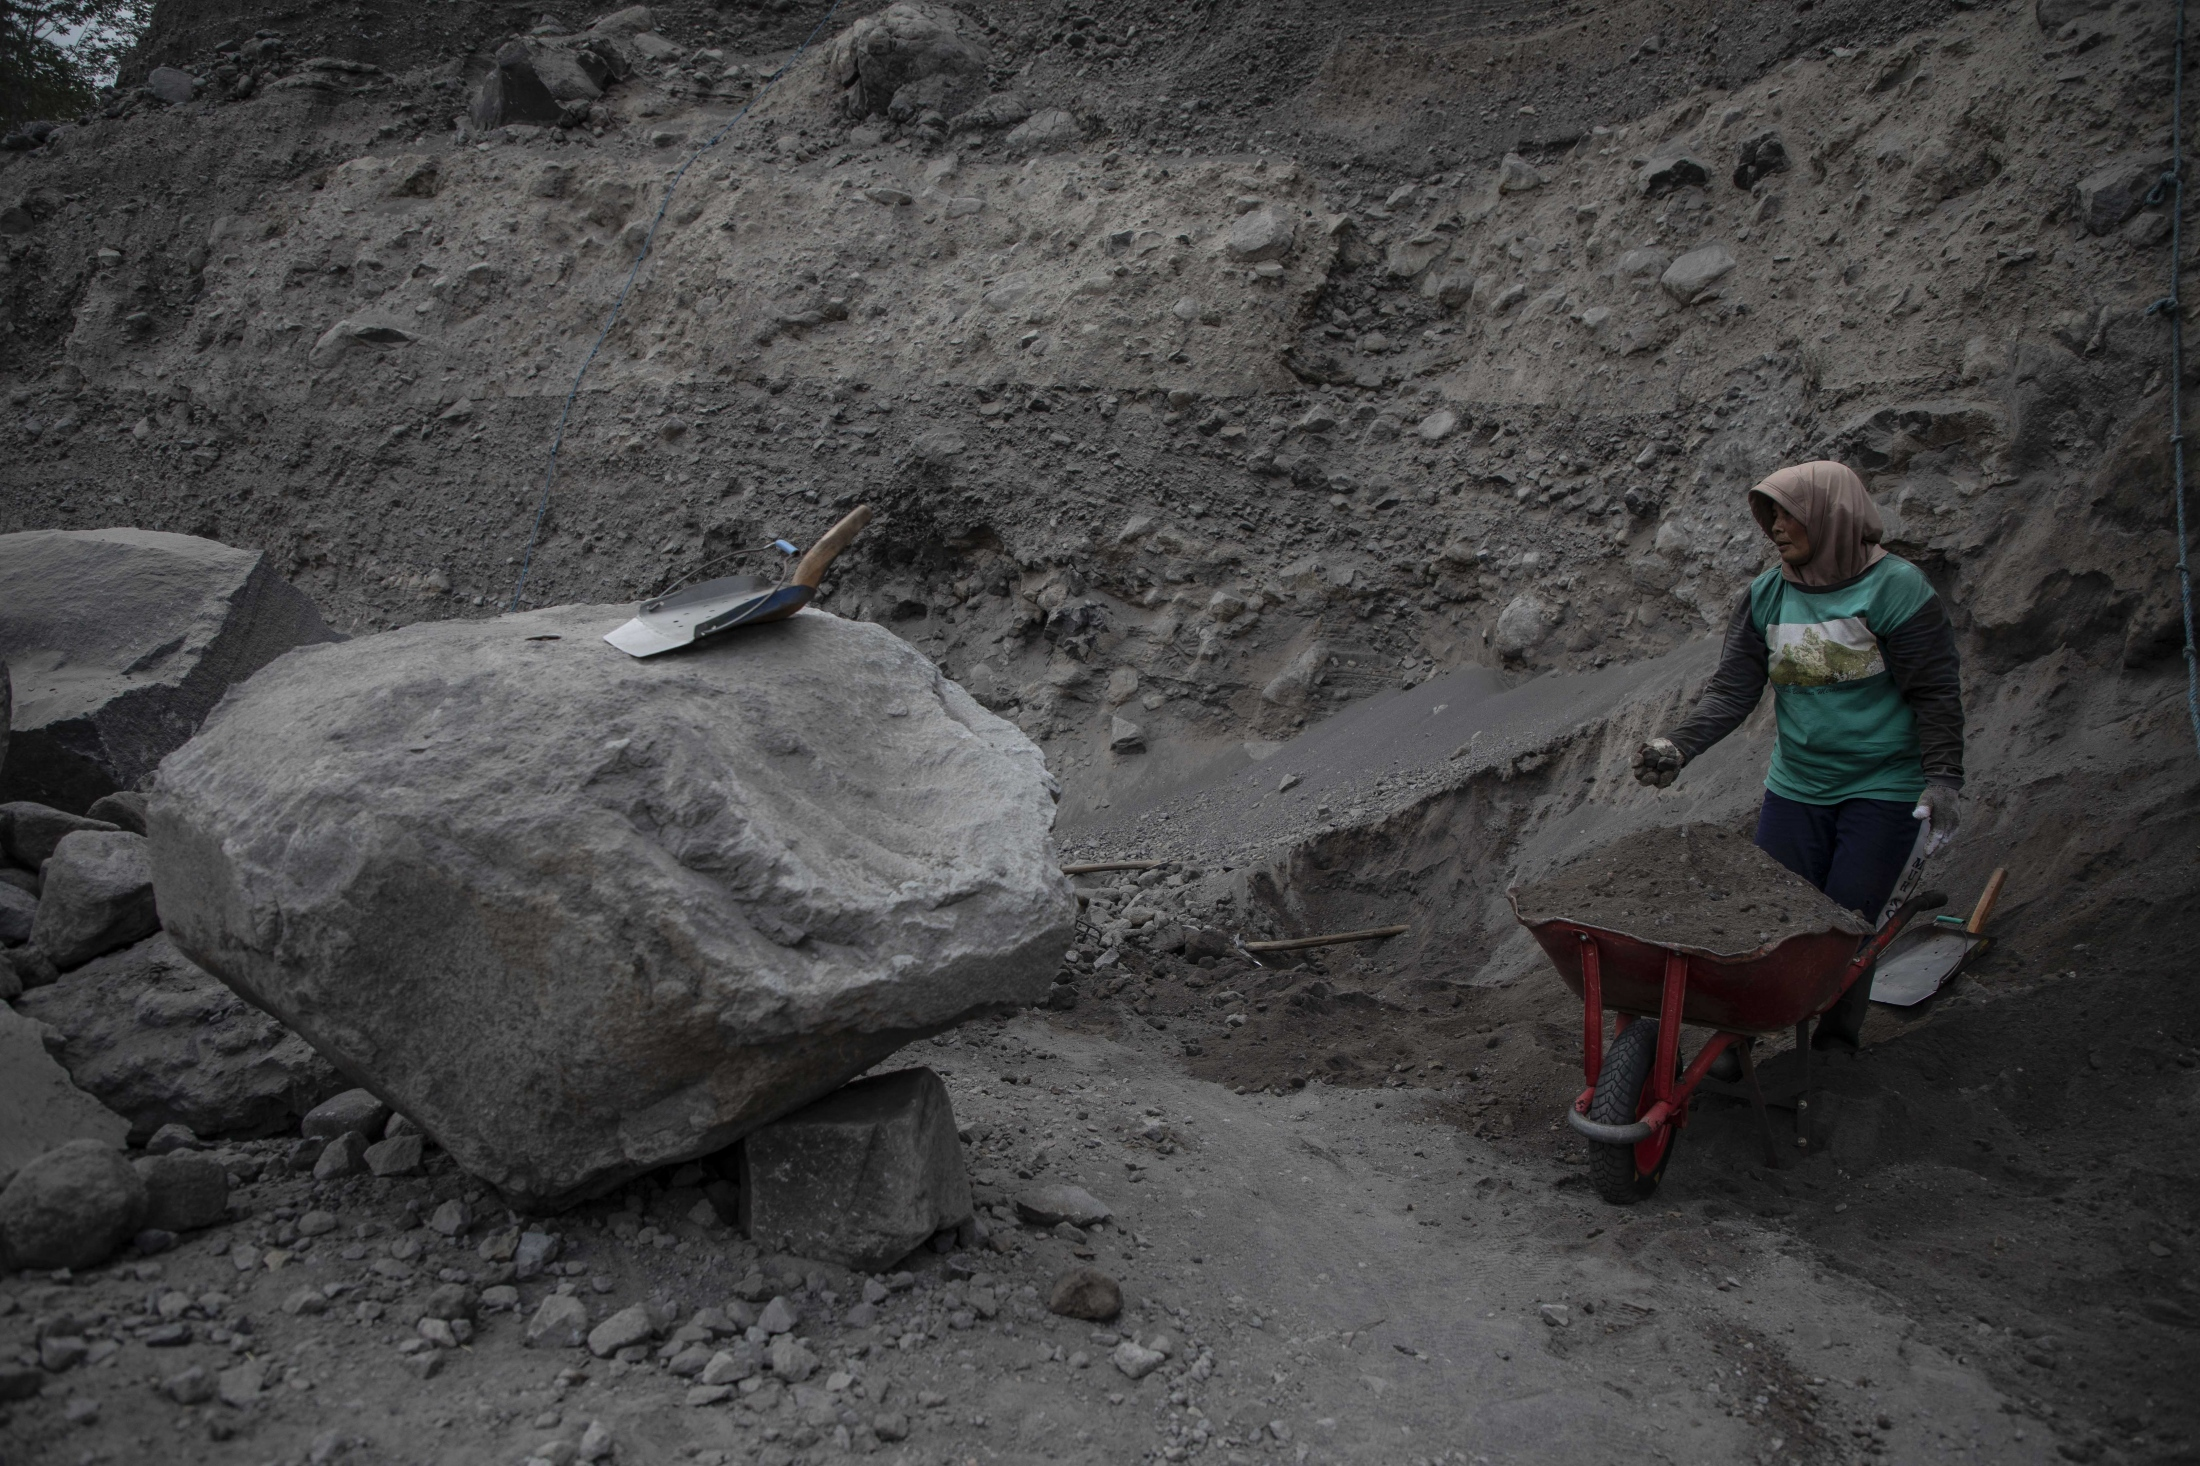 Mbah Pausen, 43, starts to work in a sand mine on the mountain every day at 06.00am. She finishes at 3.00pm to take care of her family, having only Friday and Sunday off. 'The work is very heavy but I have no other choice in life,' she says. As her parents worked as sand miners, she began this work at the age of 6. She know that she is at risk of being buried by a landslide each day. 'If you can, don't work here,' she continues, and yet she plans to work here until she can't anymore. She is the only woman working in this sand mine, lives about 6 miles from the mountain, and earns earning 30000 - 50000 Indonesian rupiah a day (2 to 3.30 US Dollar